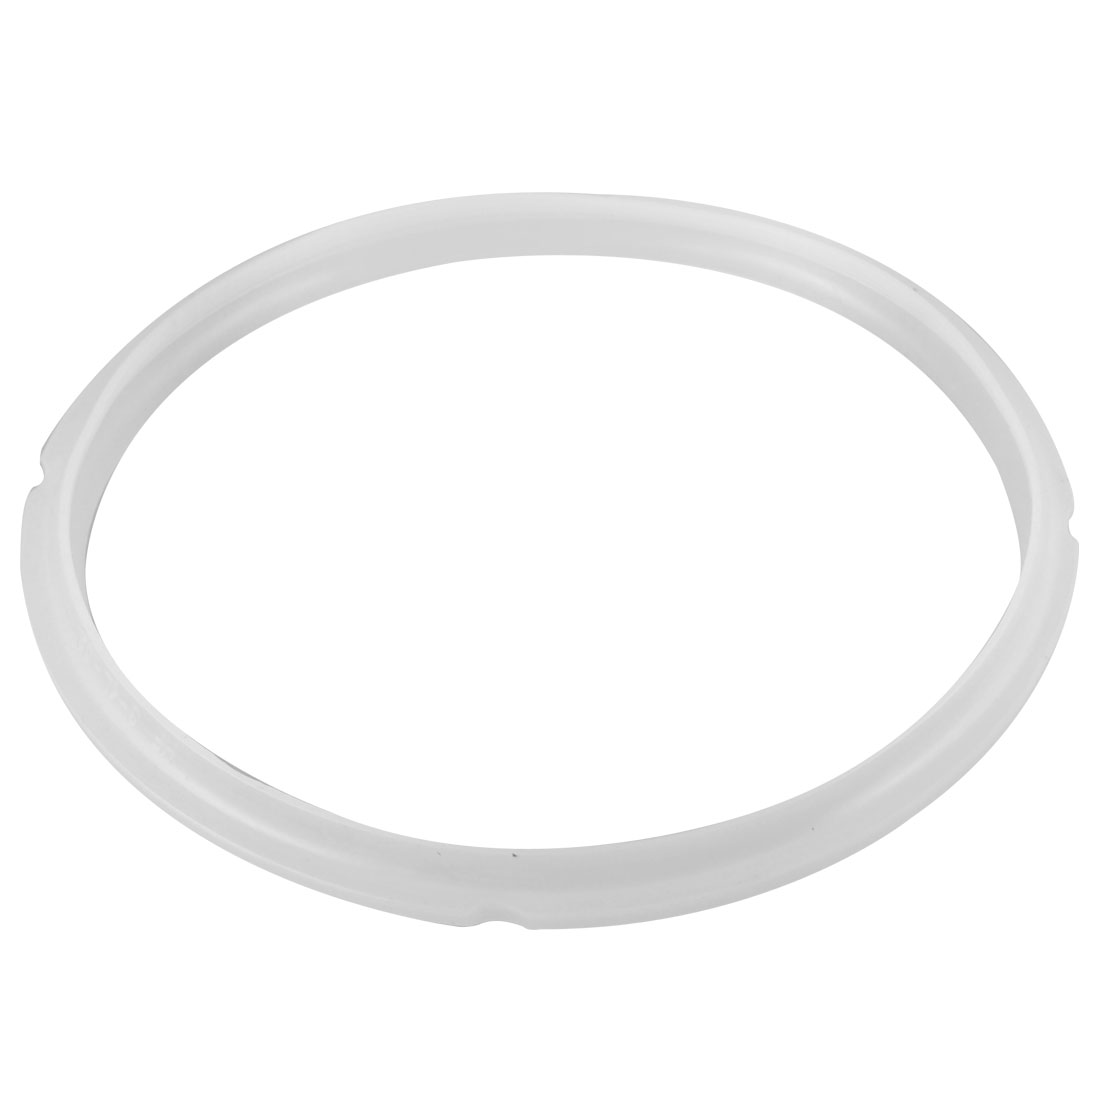 Home 3-4L Electric Pressure Cooker Parts Seal Ring Gasket 200mm x 220mm x 19mm